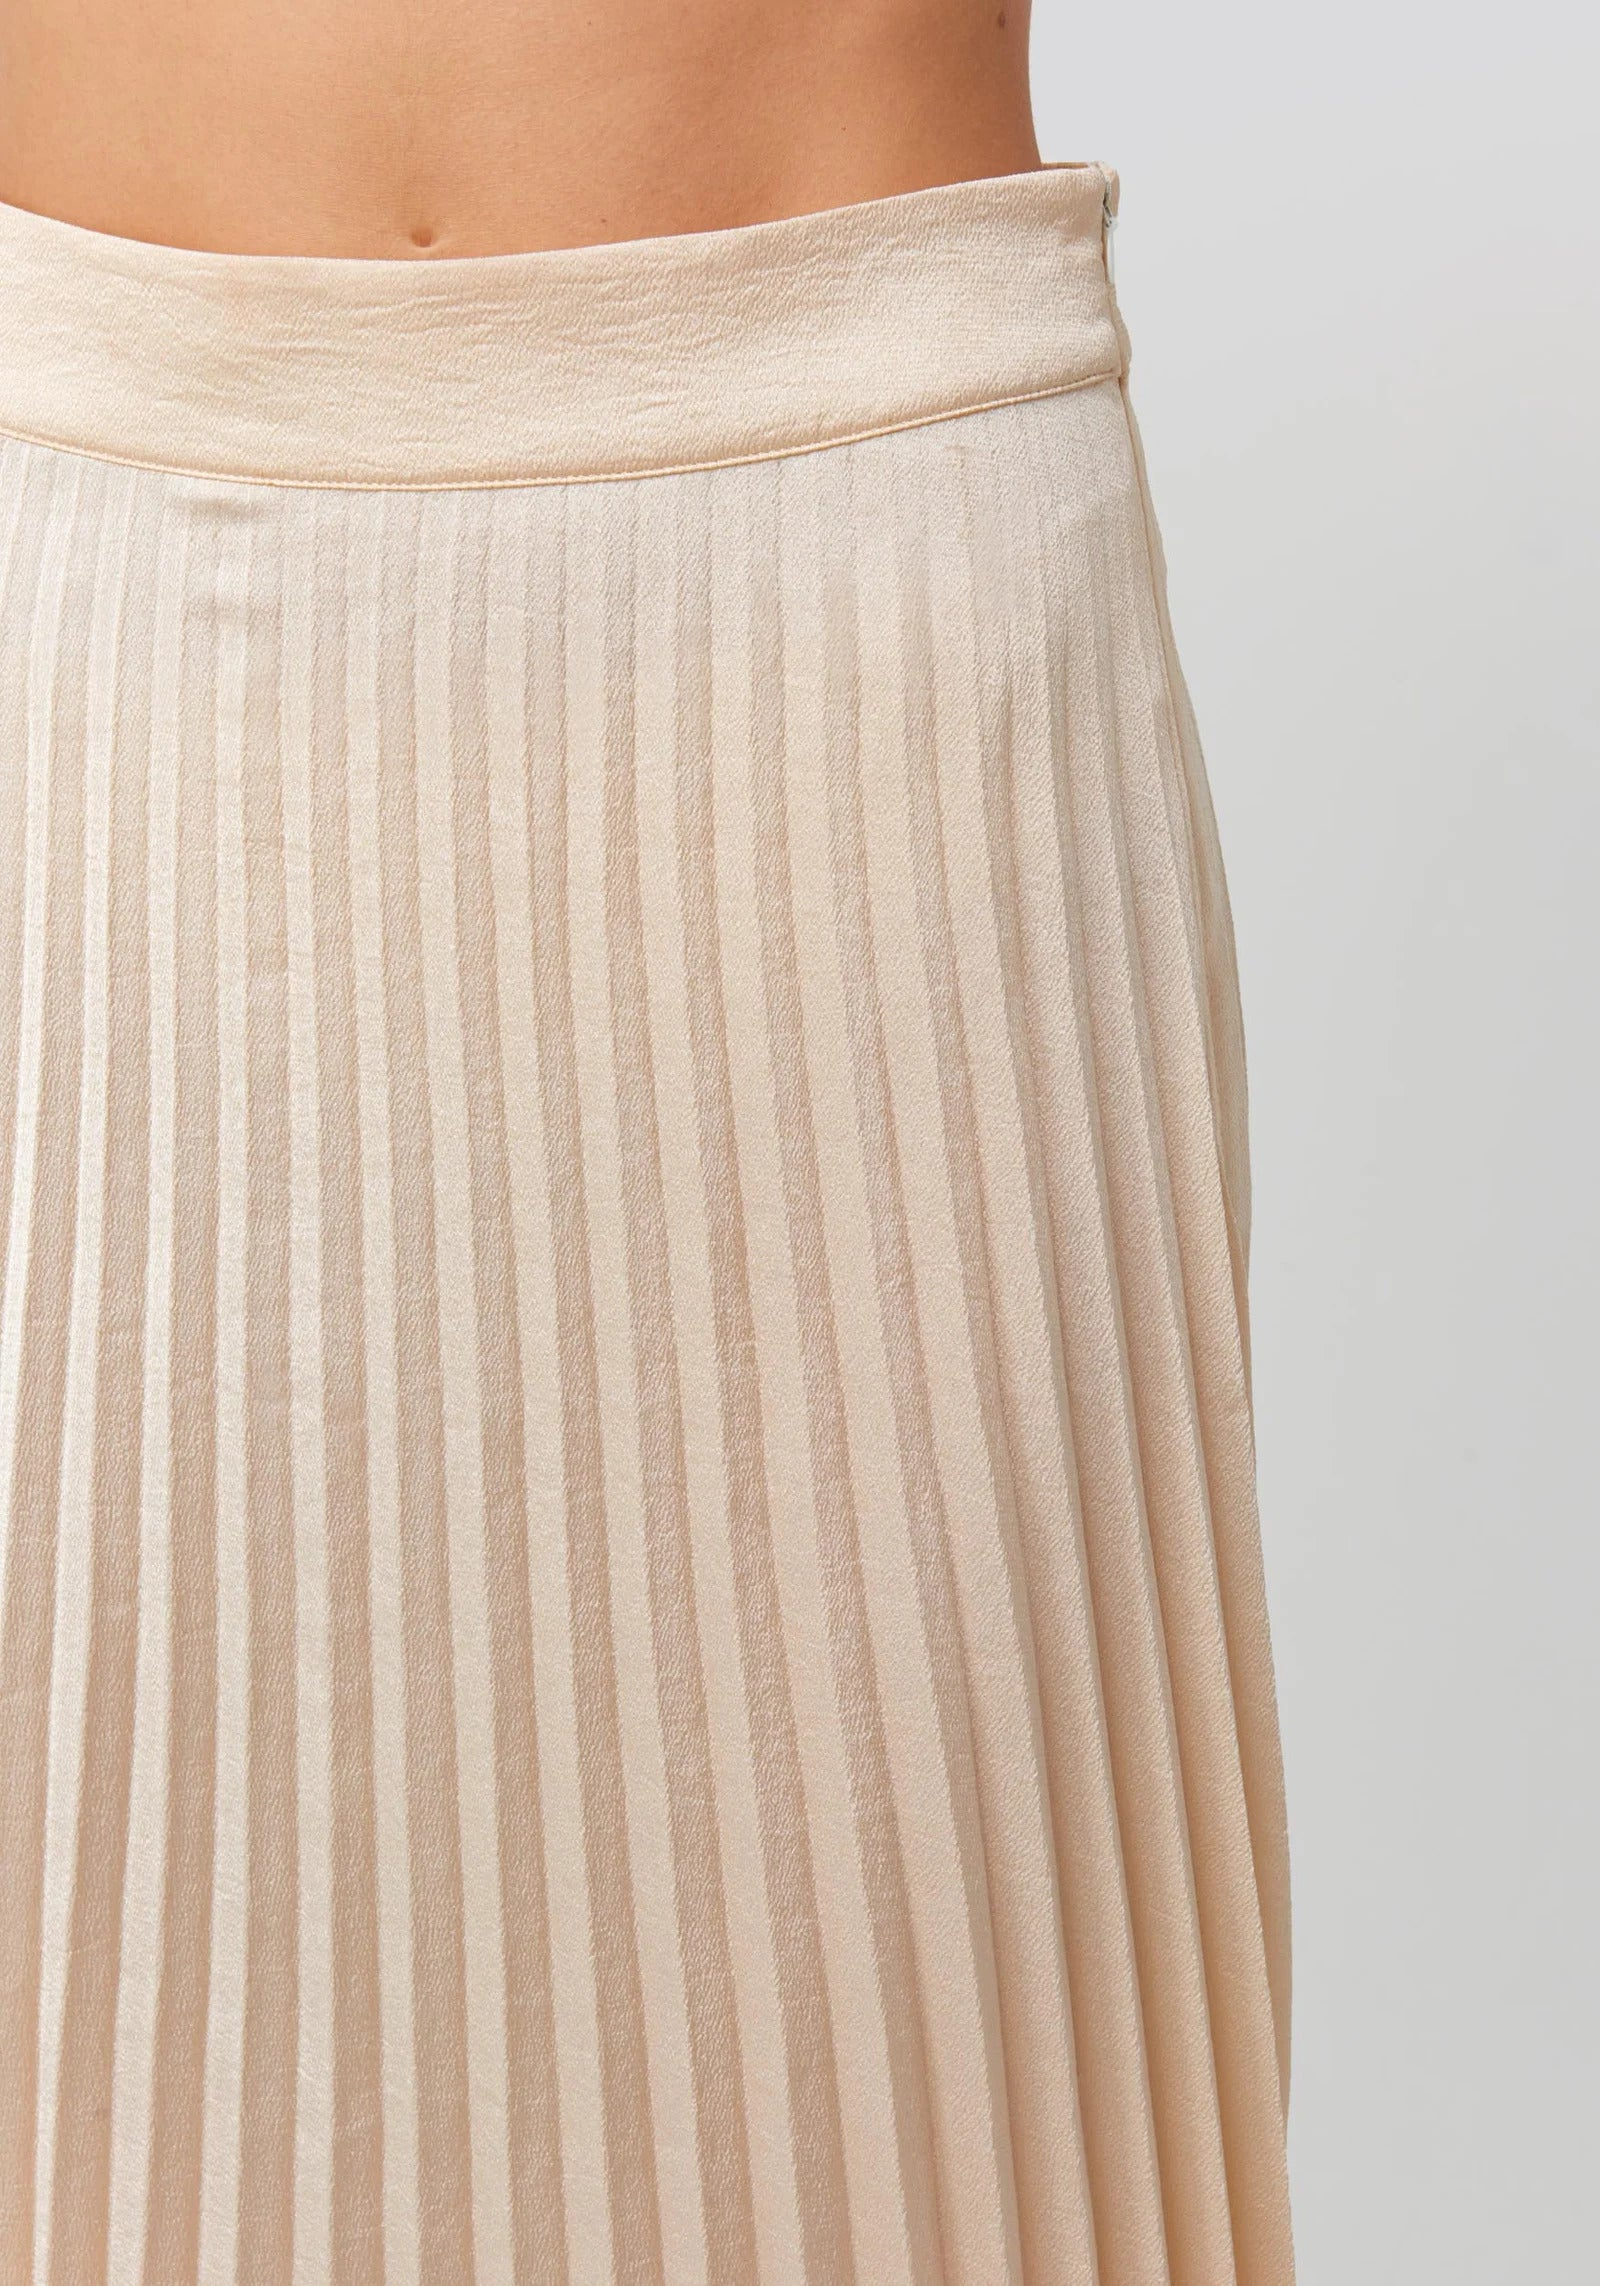 Bianca Long Skirt Light Beige - LittleCuteCorner.